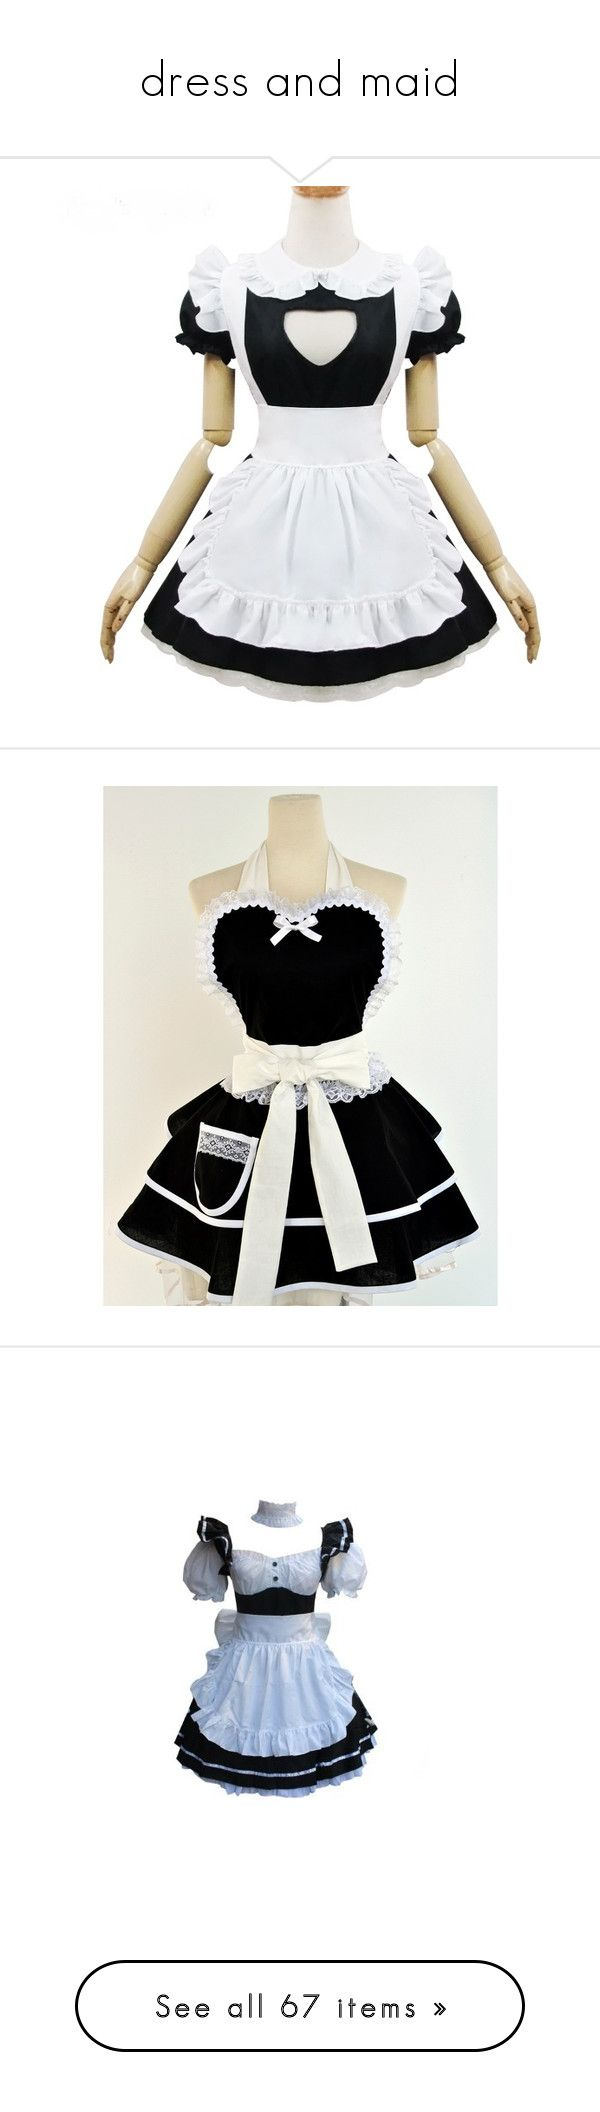 White pinafore apron costume -  Dress And Maid By Sweetrevenge 1 Liked On Polyvore Featuring Costumes